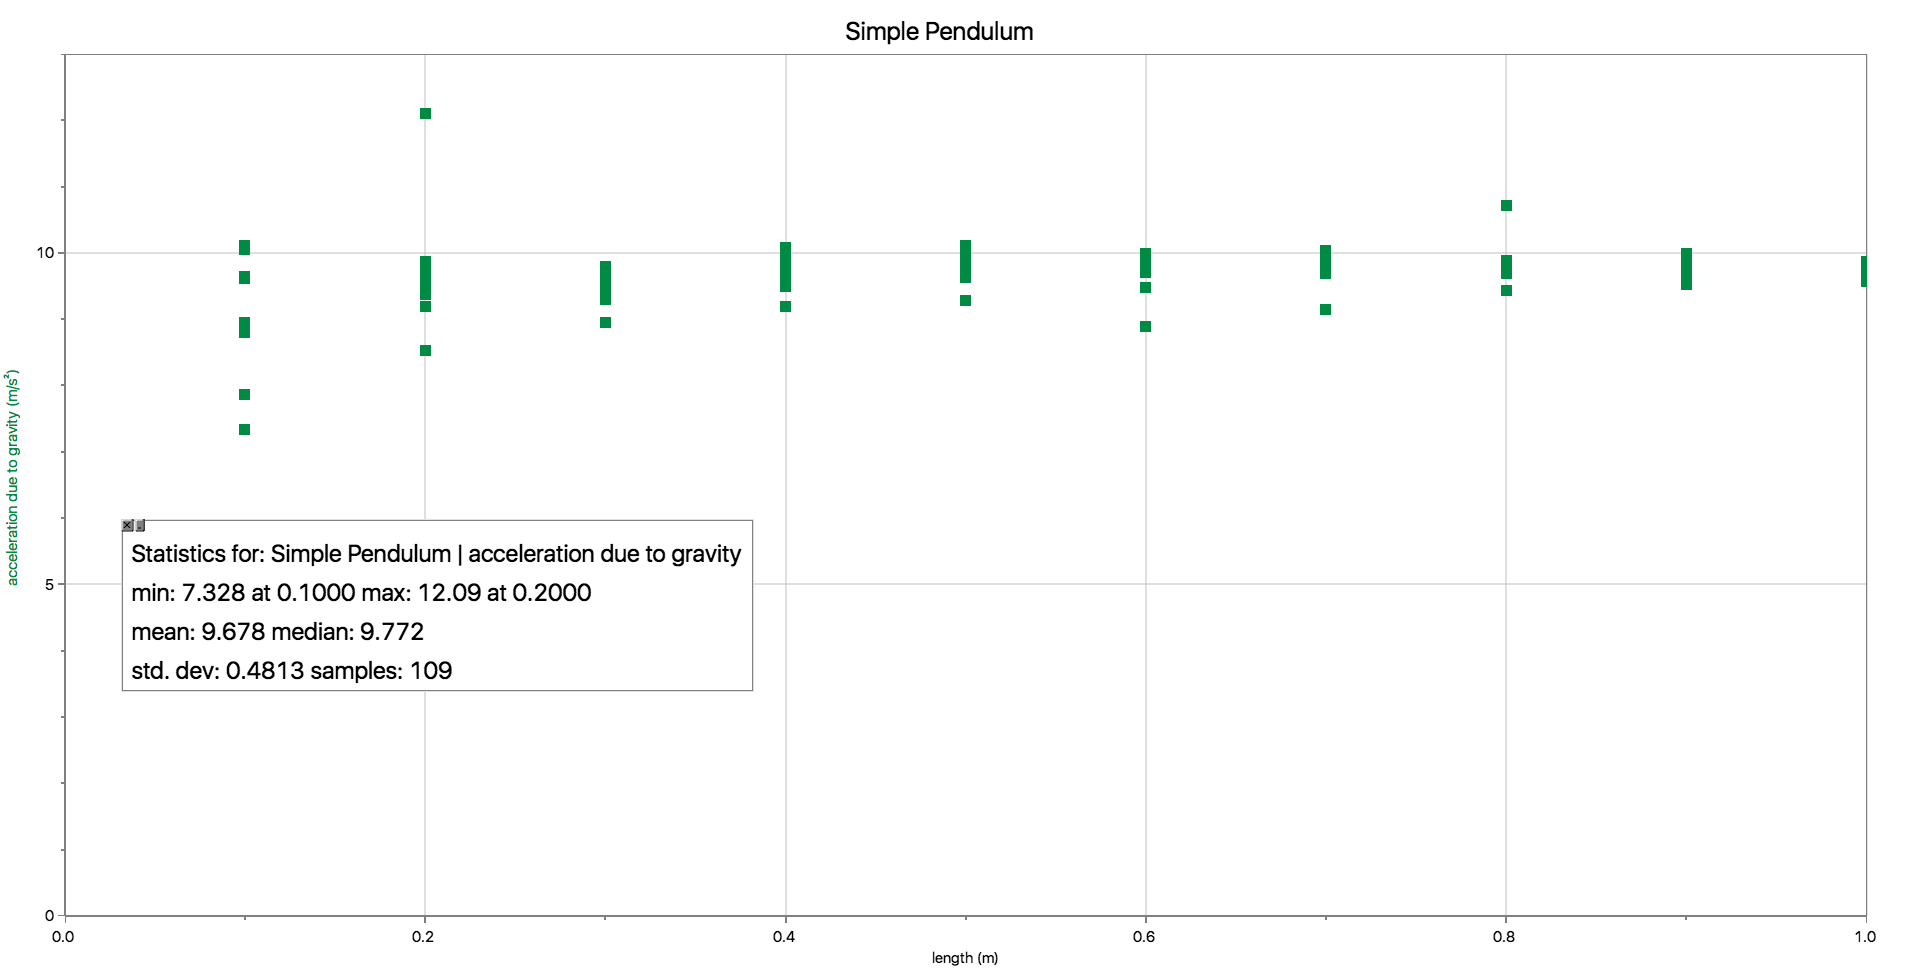 Graph with some one-variable statistics: min, max, mean, median, standard deviation, and number